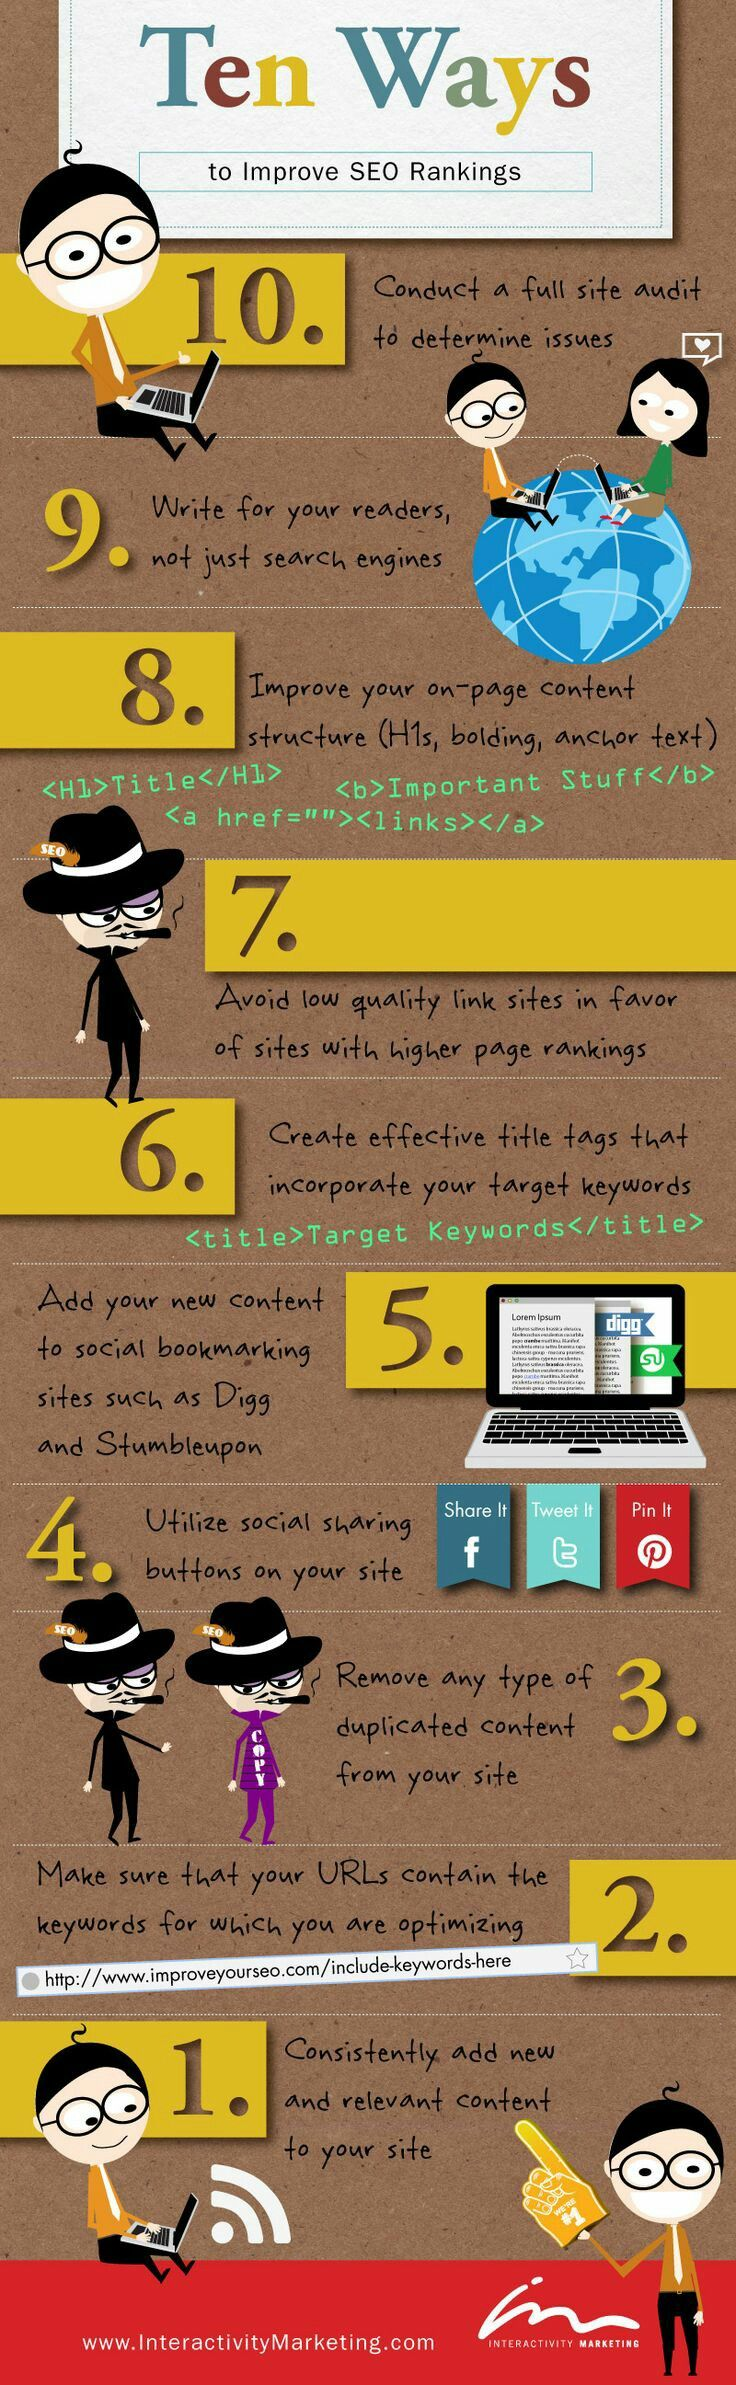 10 Ways to improve #SEO Rankings - Dielle Web e Grafica